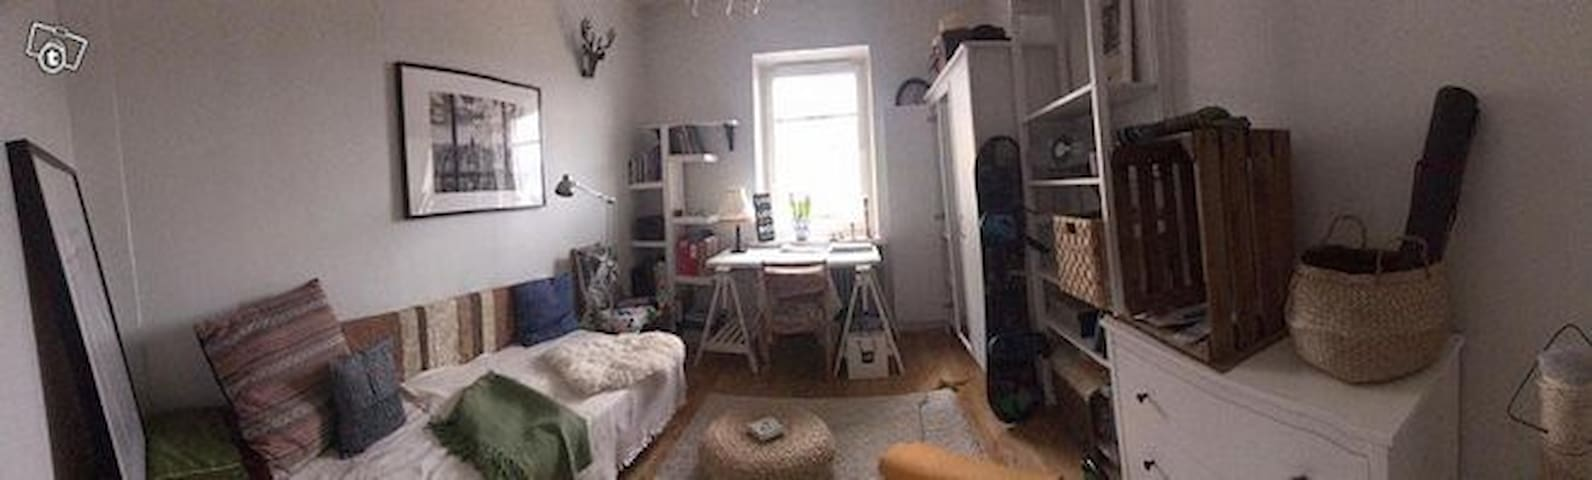 2-bedroom bright and spacious flat